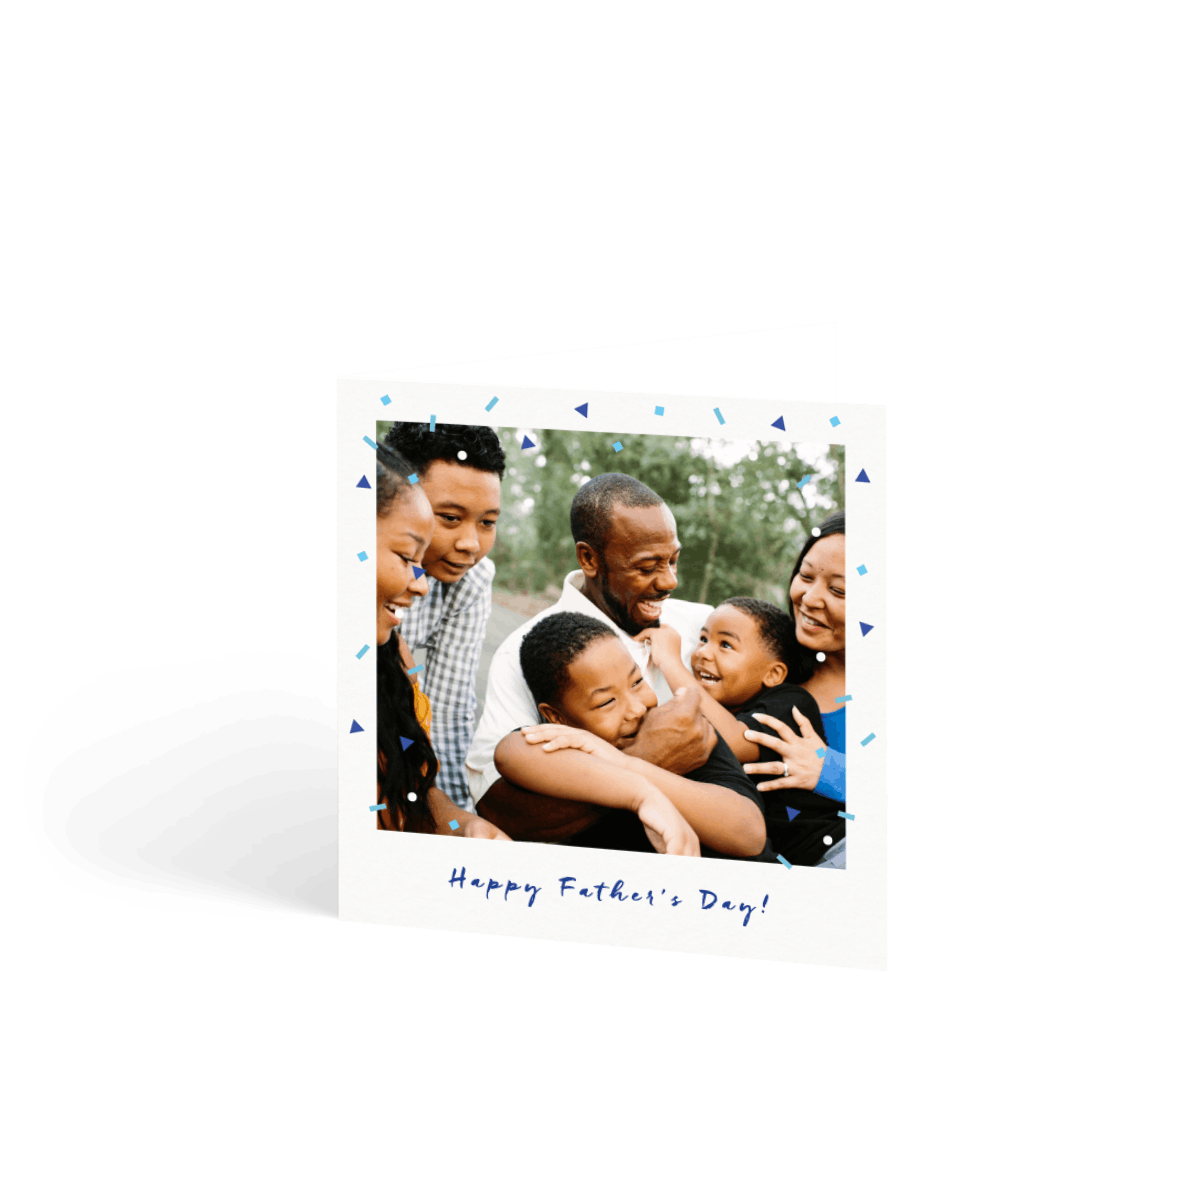 Https%3a%2f%2fwww.papier.com%2fproduct image%2f7319%2f16%2ffather s day blue confetti 1799 avant 1463138540.png?ixlib=rb 1.1